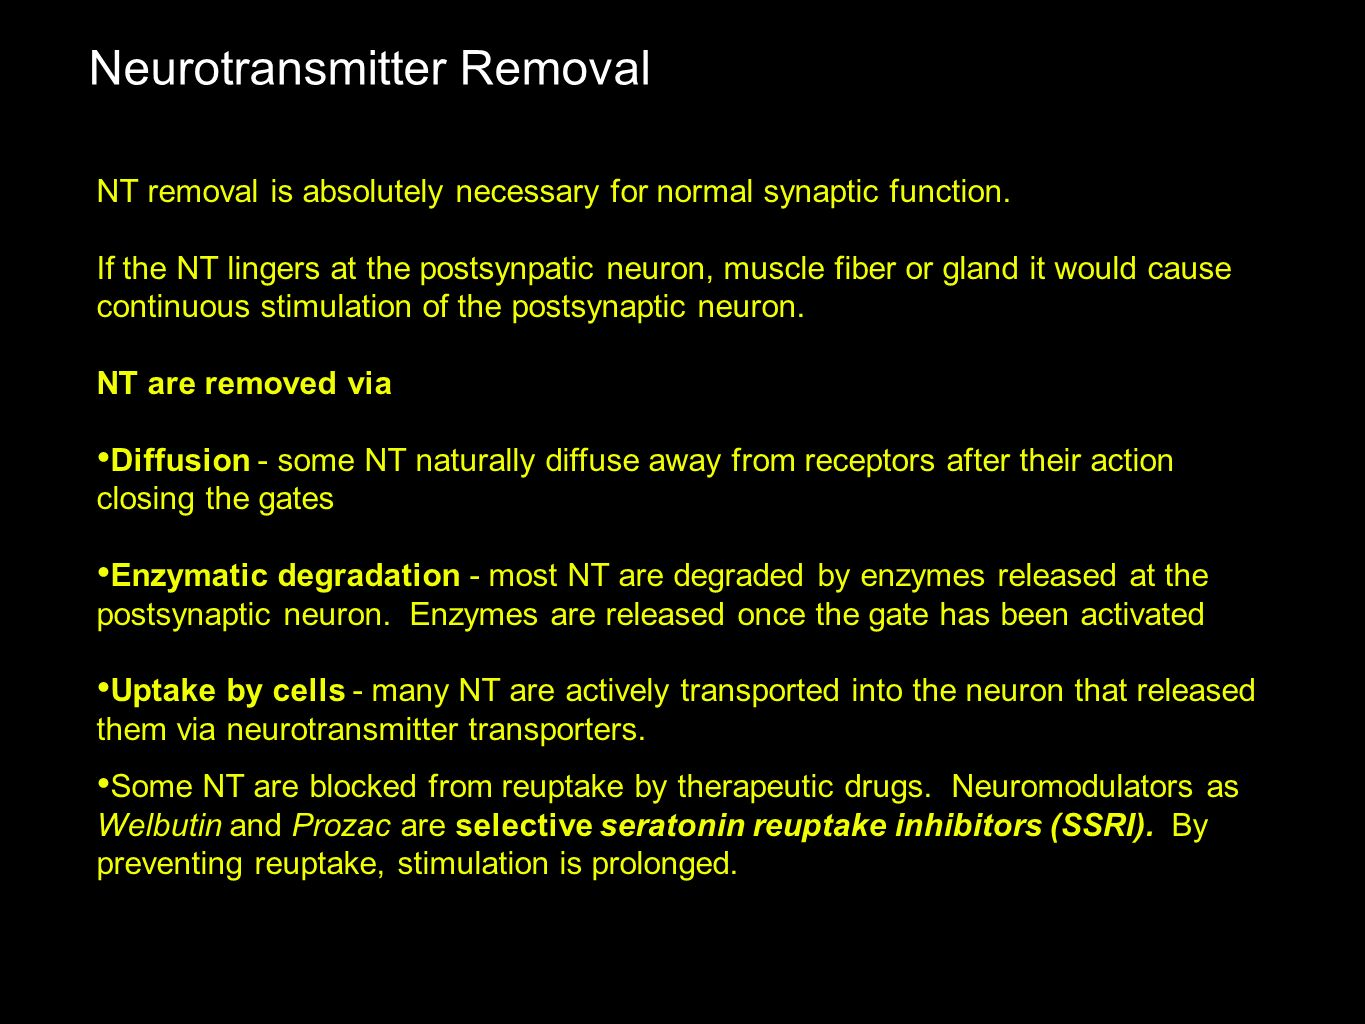 Neurotransmitter Removal NT removal is absolutely necessary for normal synaptic function. If the NT lingers at the postsynpatic neuron, muscle fiber o